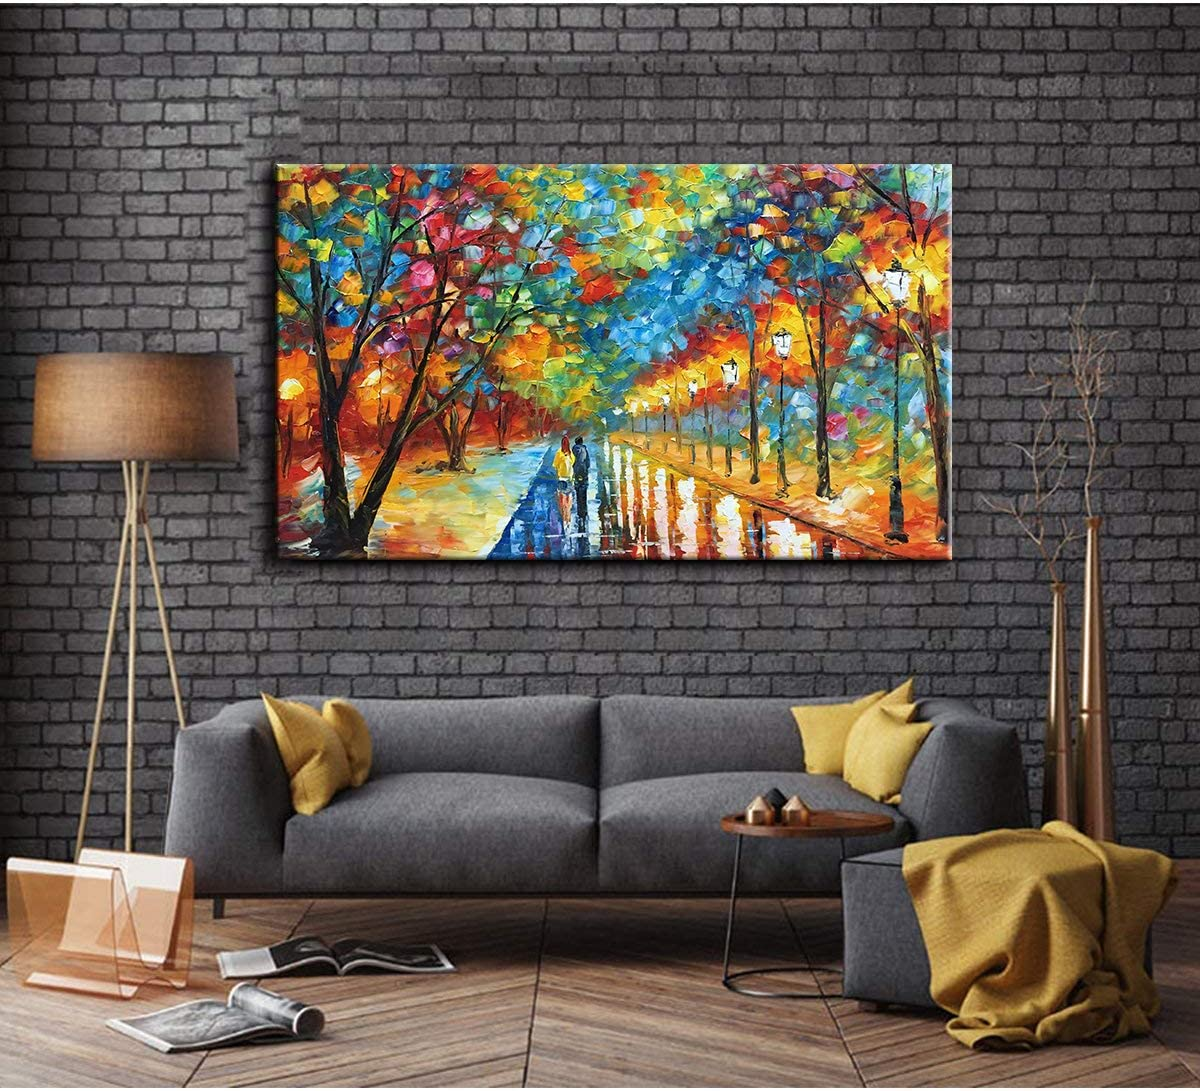 Tyed Art- 24X48 Inch Oil Paintings on Canvas Art 100 Hand-Painted Contemporary Artwork Abstract Artwork Night Rainy Street Wall Art livingroom Bedroom Dinning Room Decorative Pictures Home Decor